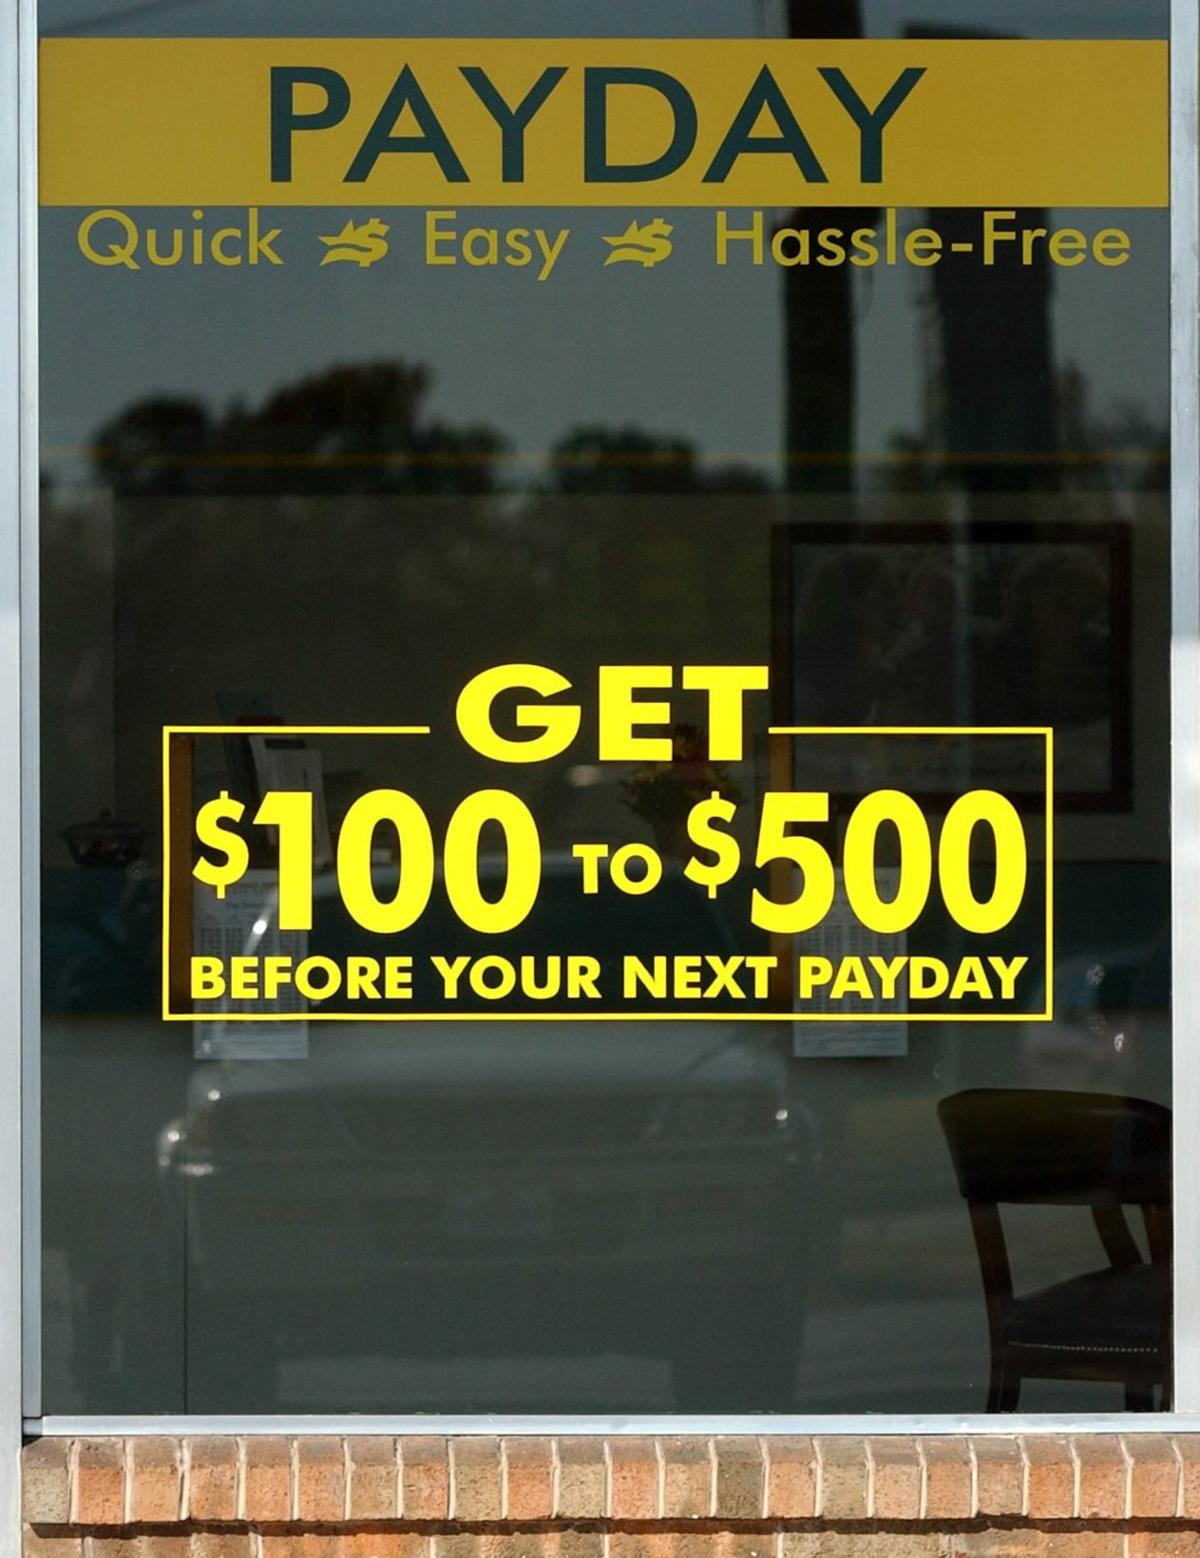 Payday advance loan locations picture 4